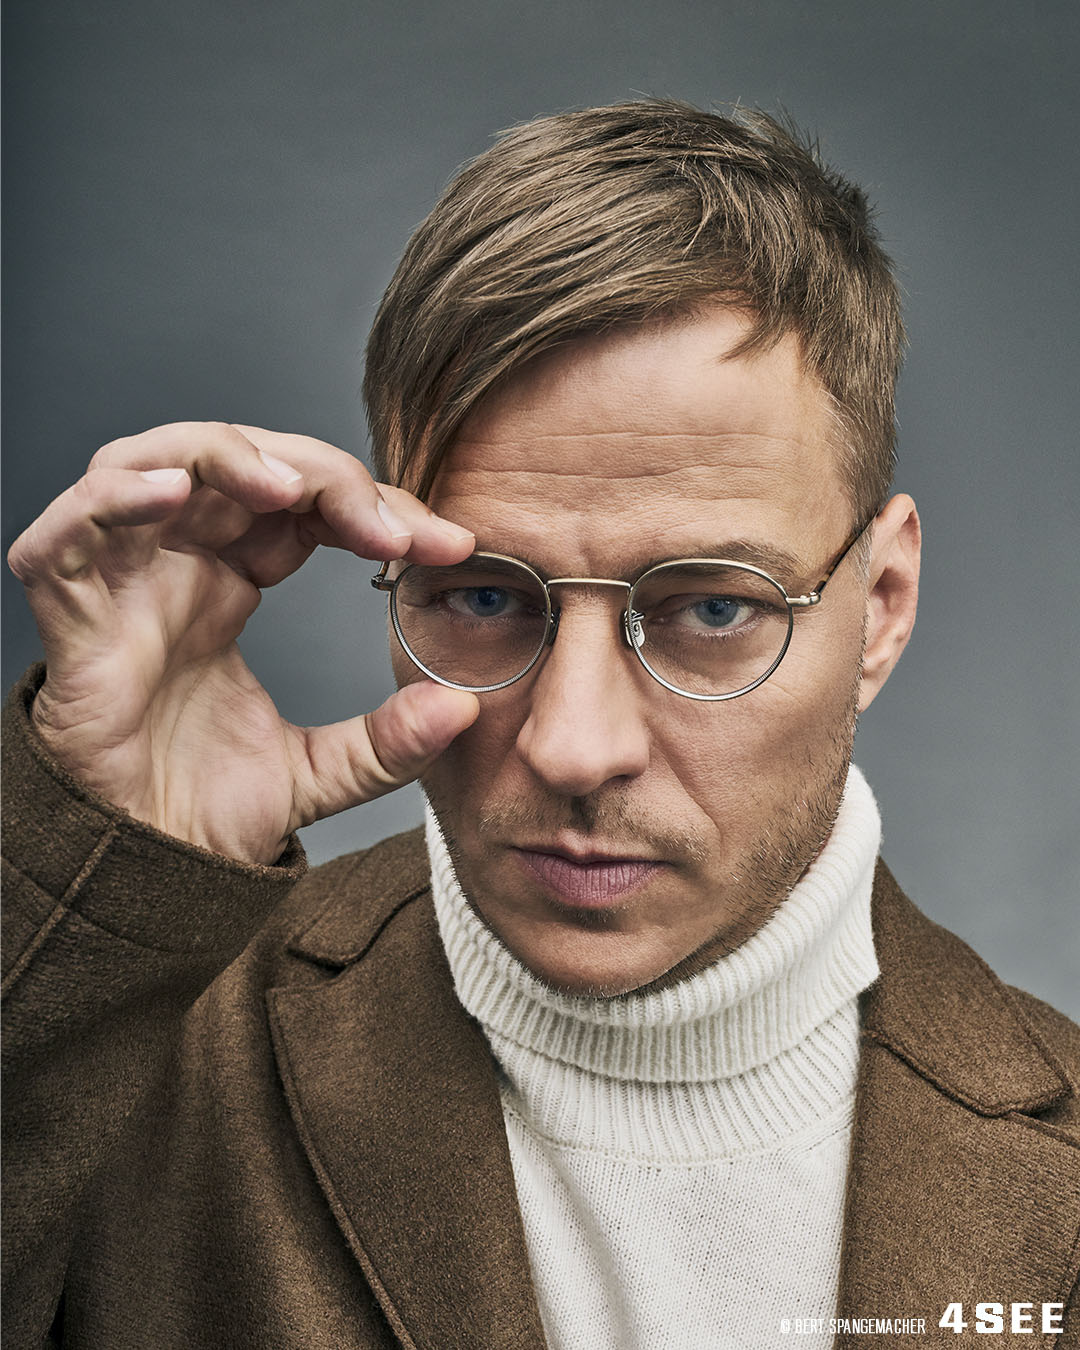 4SEE Interview with Tom Wlaschiha, Photography by Bert Spangemacher, Eyewear by Eyevan